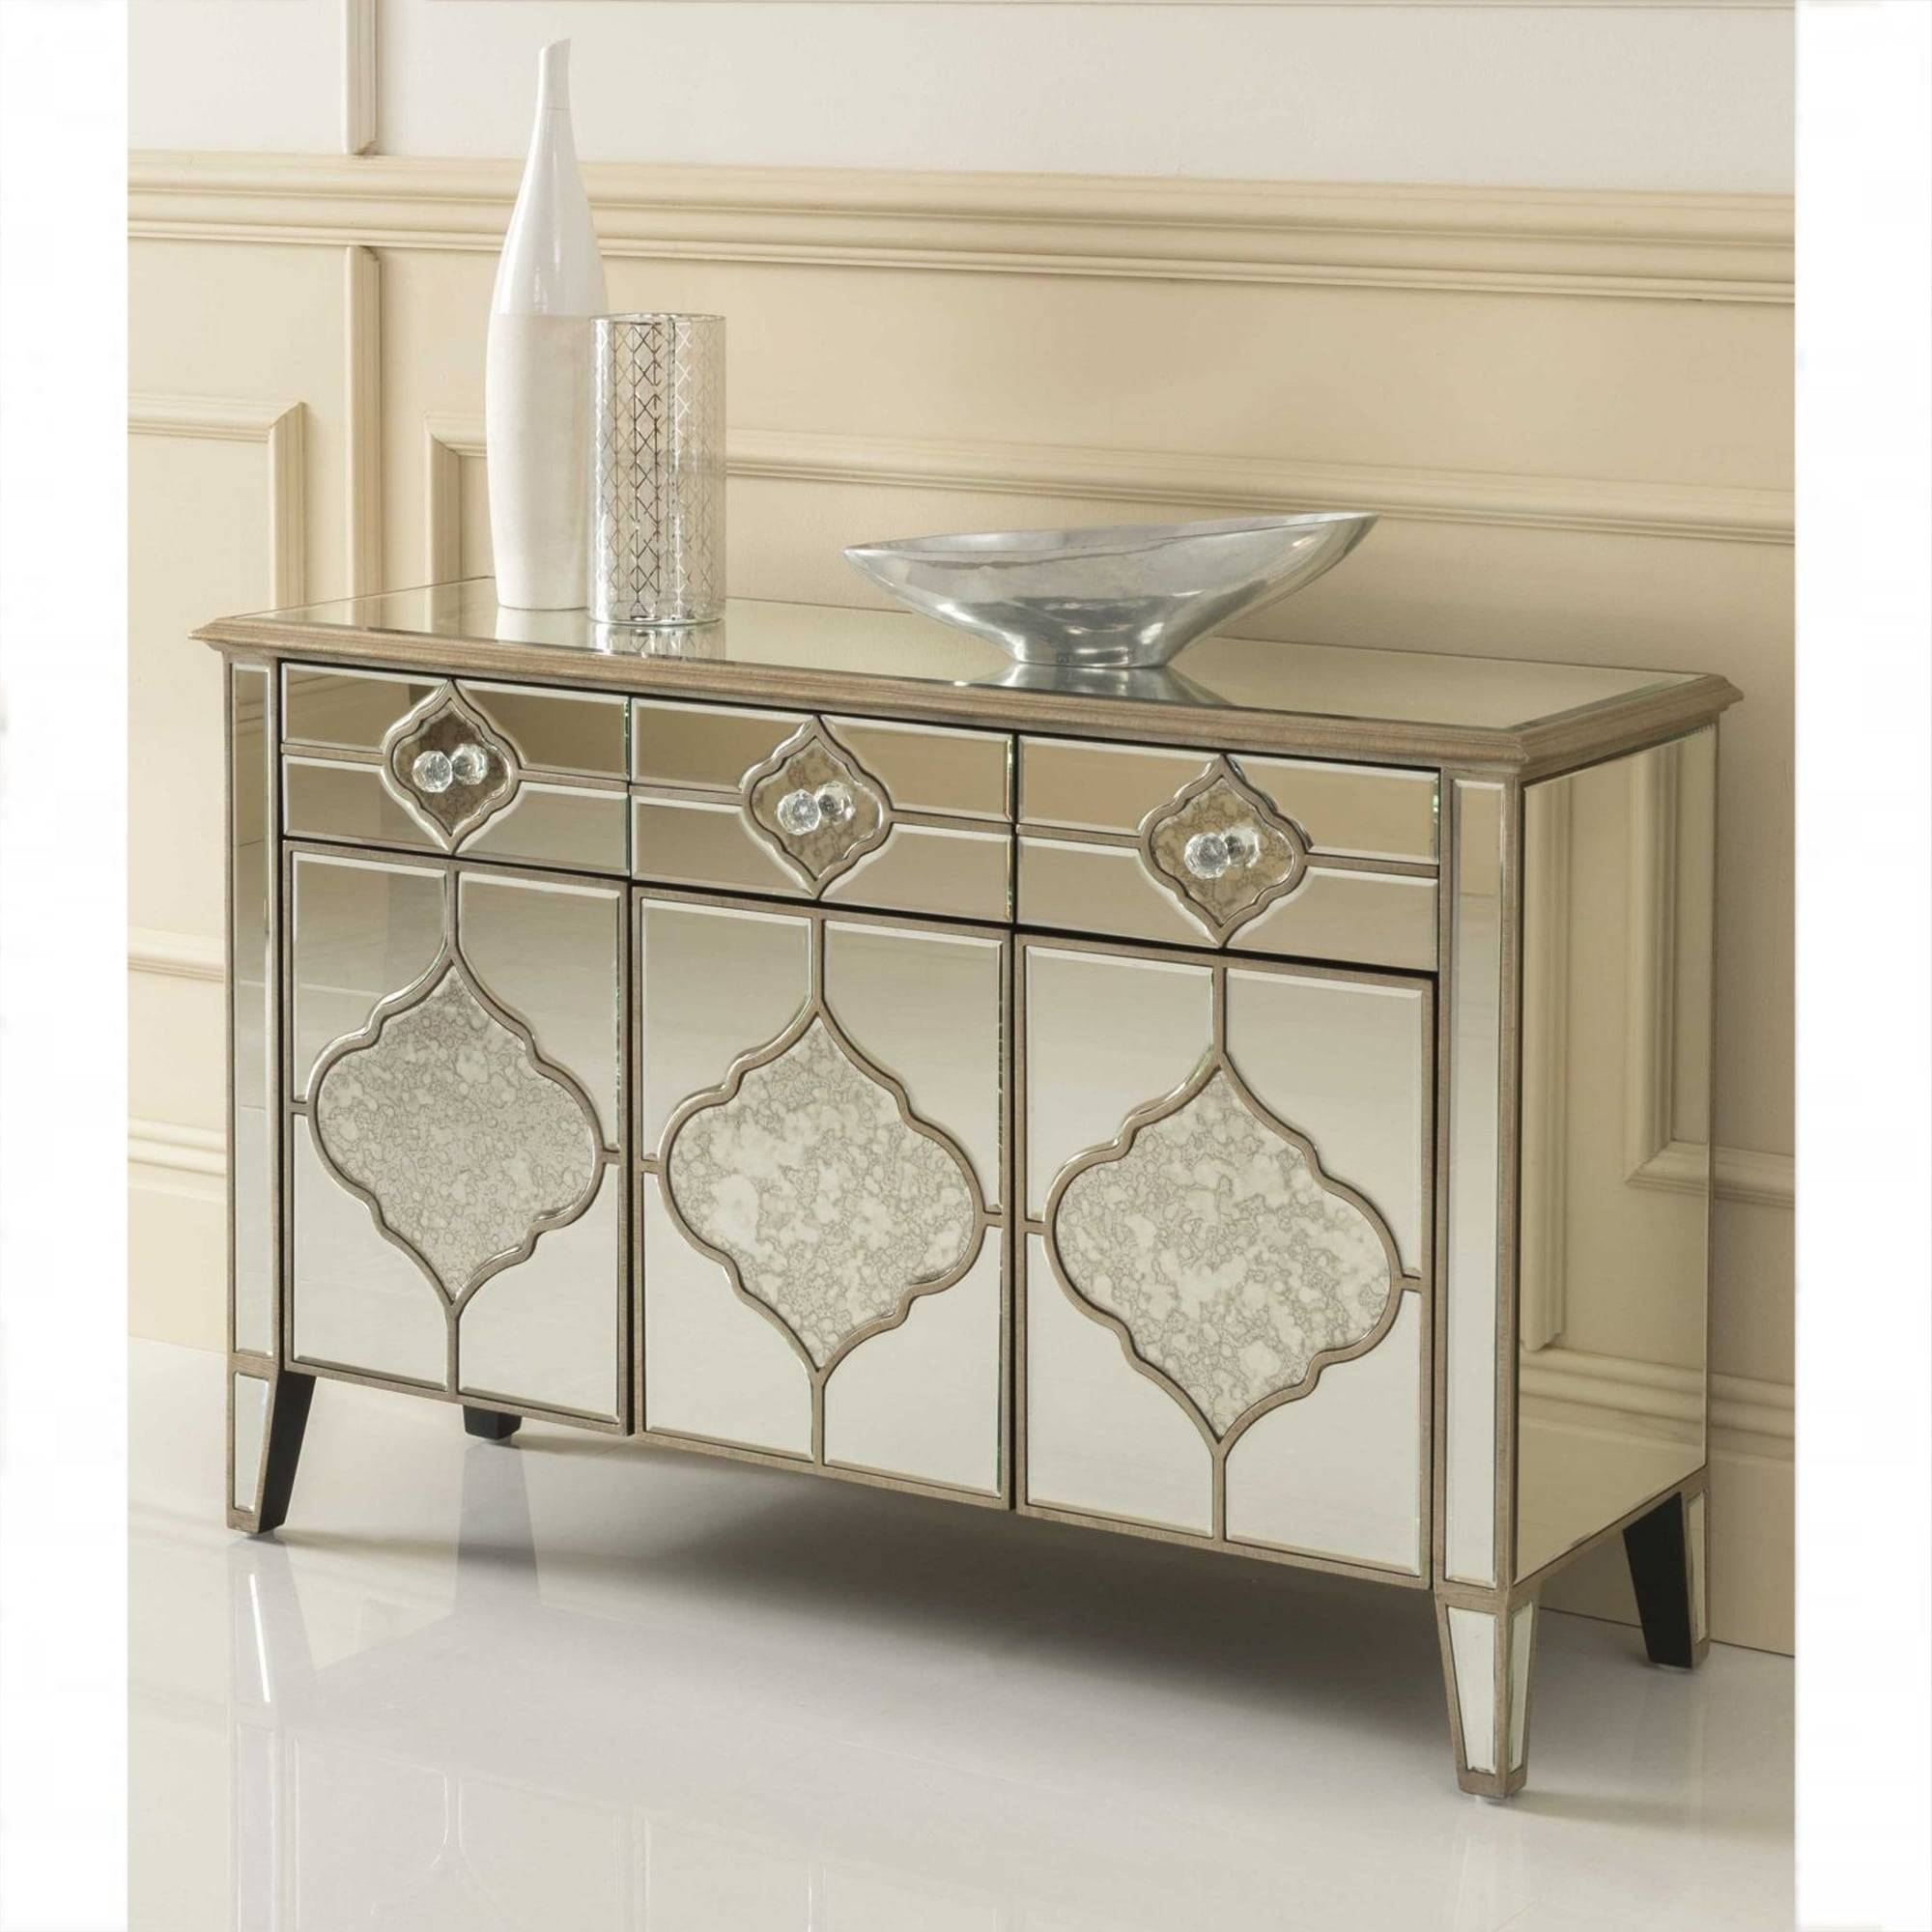 Sassari Mirrored Sideboard | Venetian Glass Furniture Intended For Mirrored Sideboard (View 1 of 20)